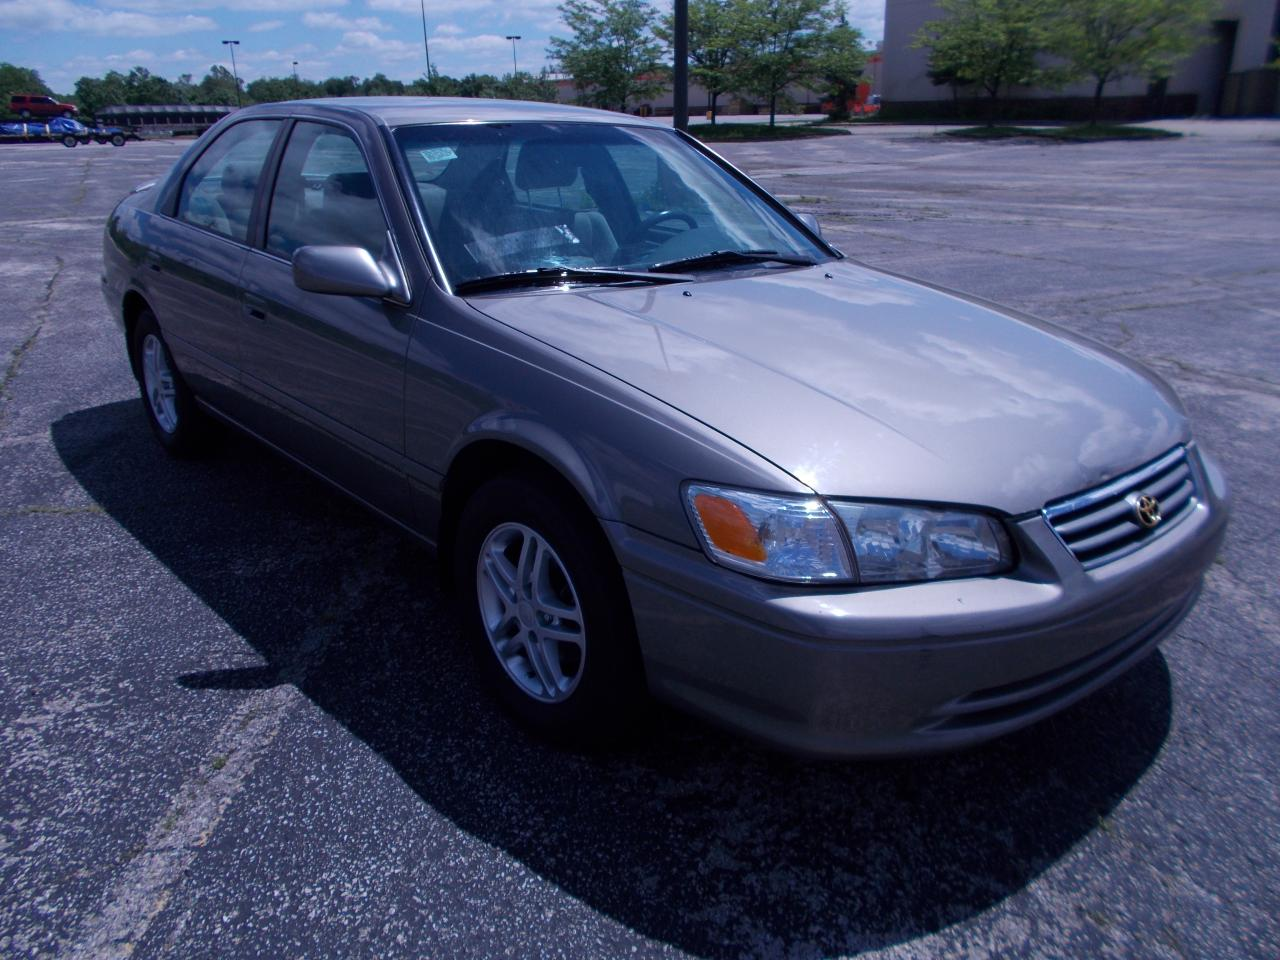 Toyota Frankfort Ky >> Sky Auto Sales LLC - Sold Car Inventory